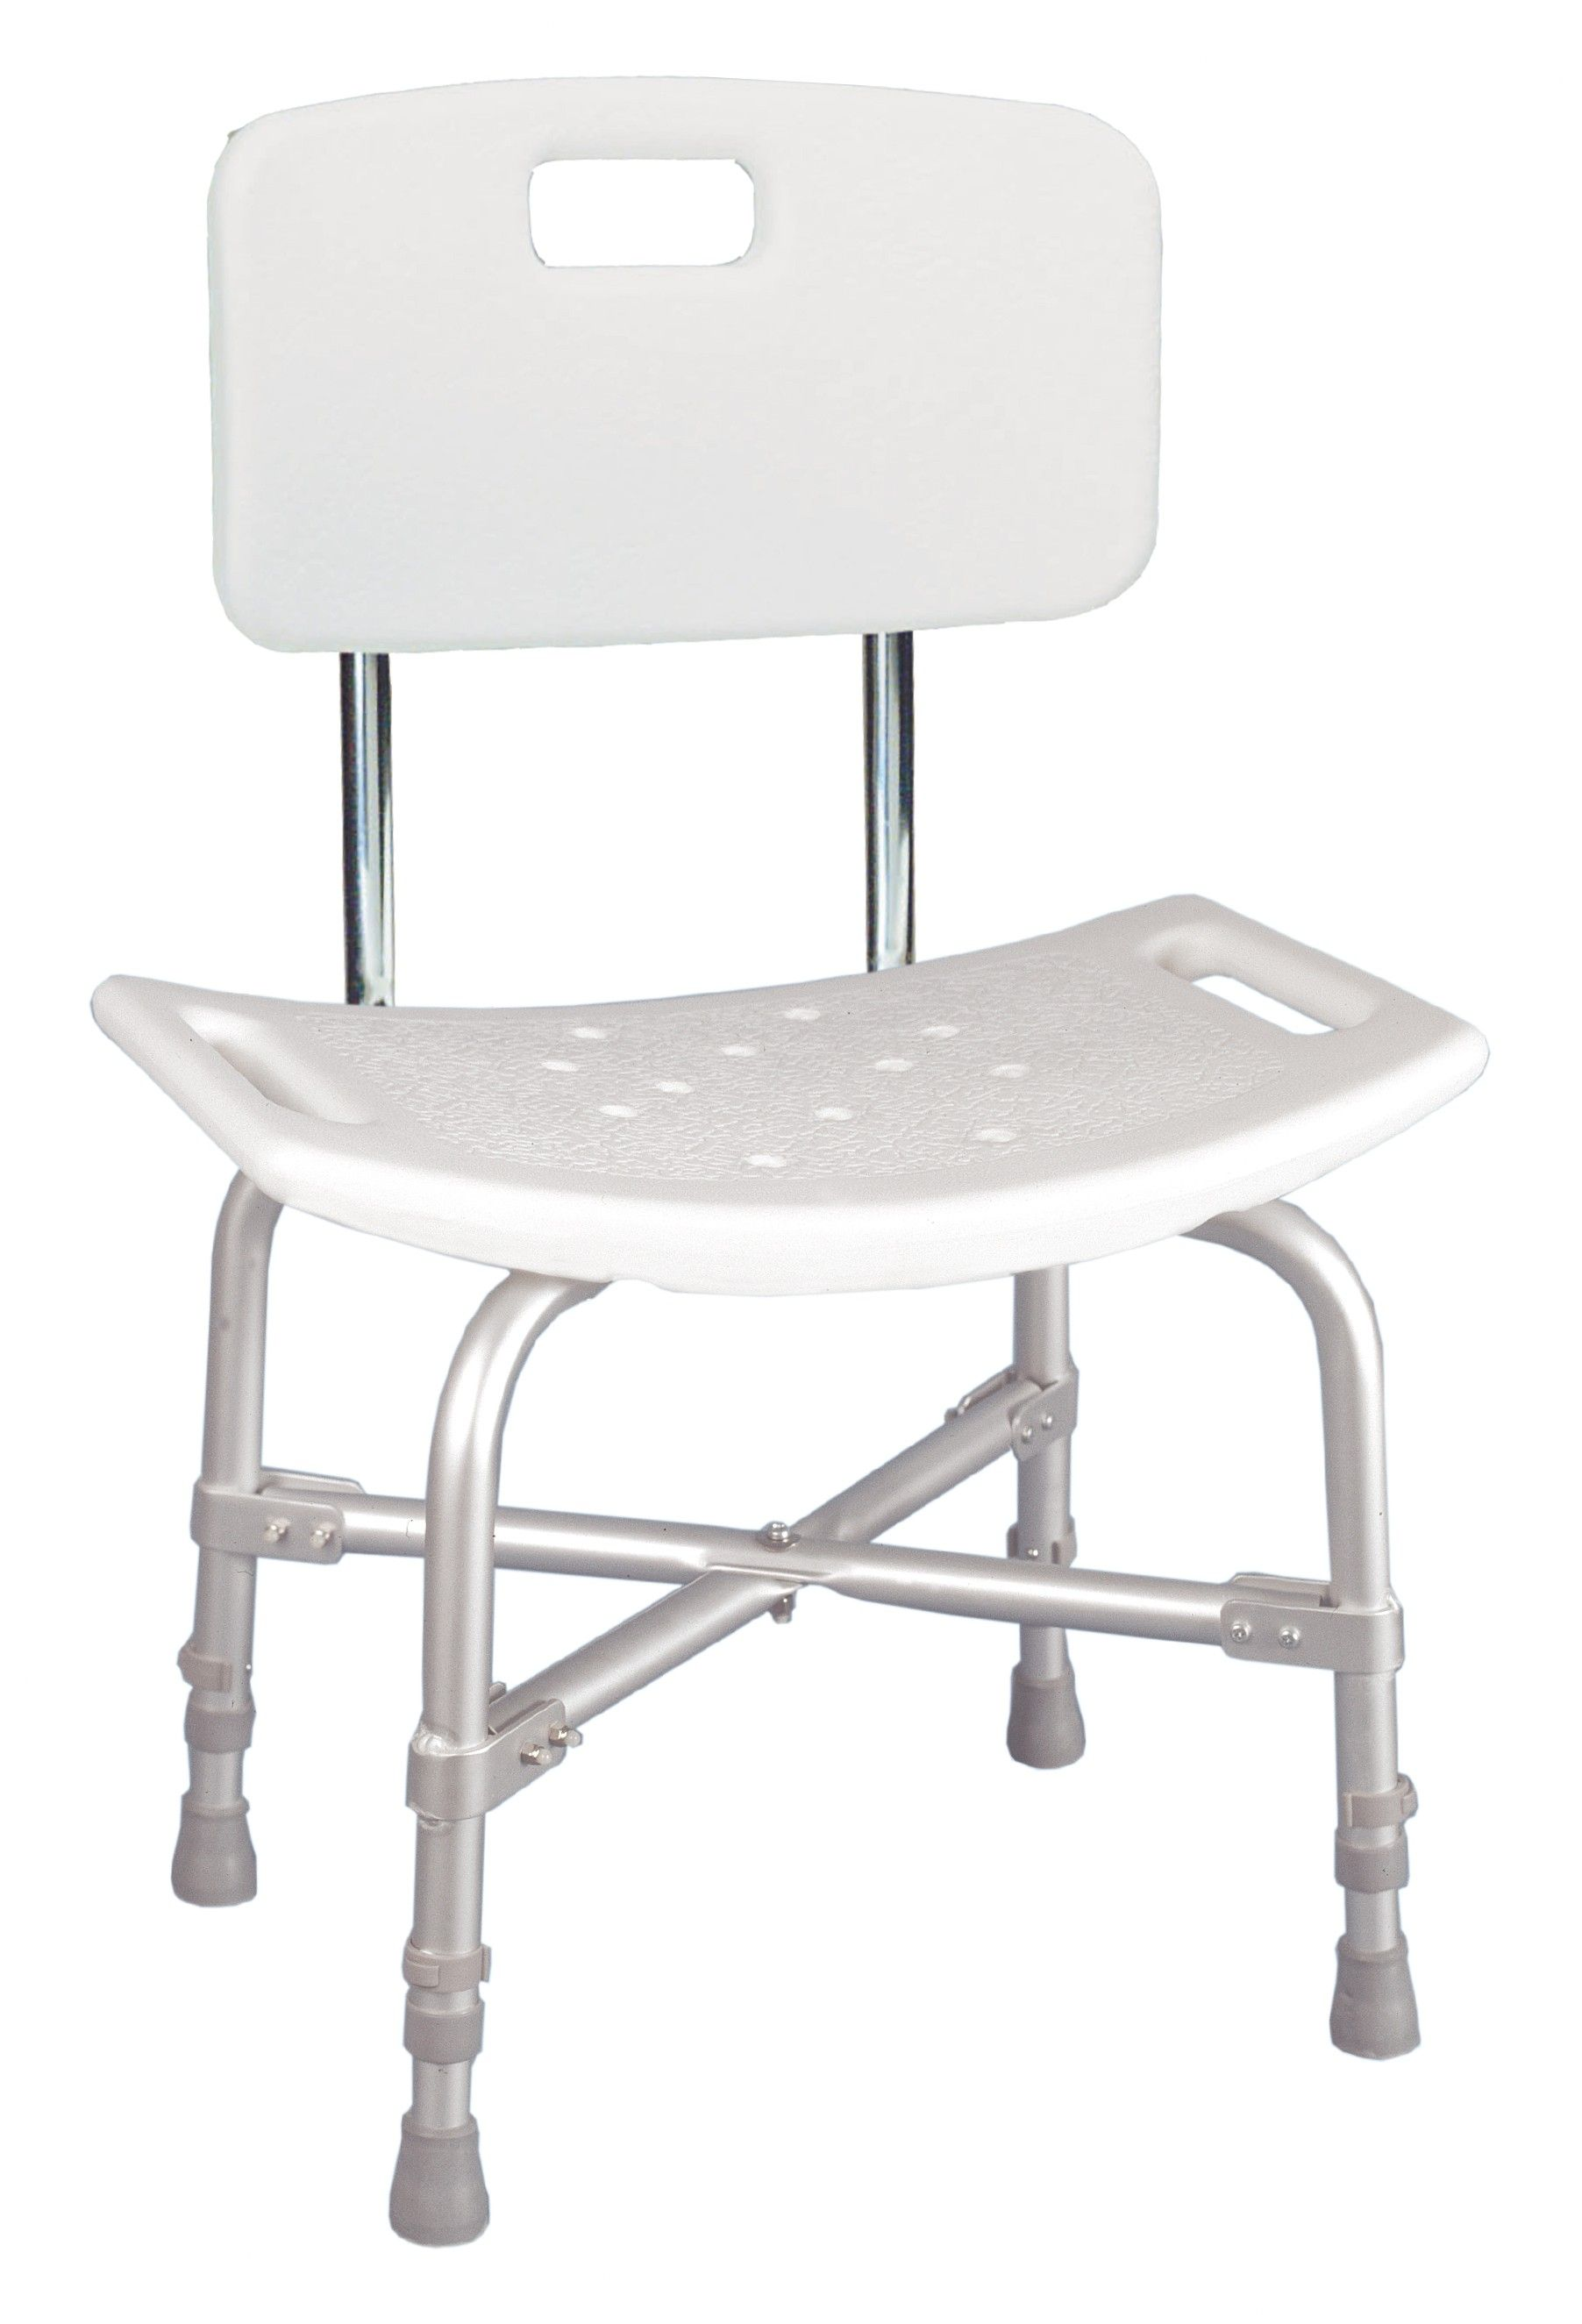 Bariatric Folding Shower Chair